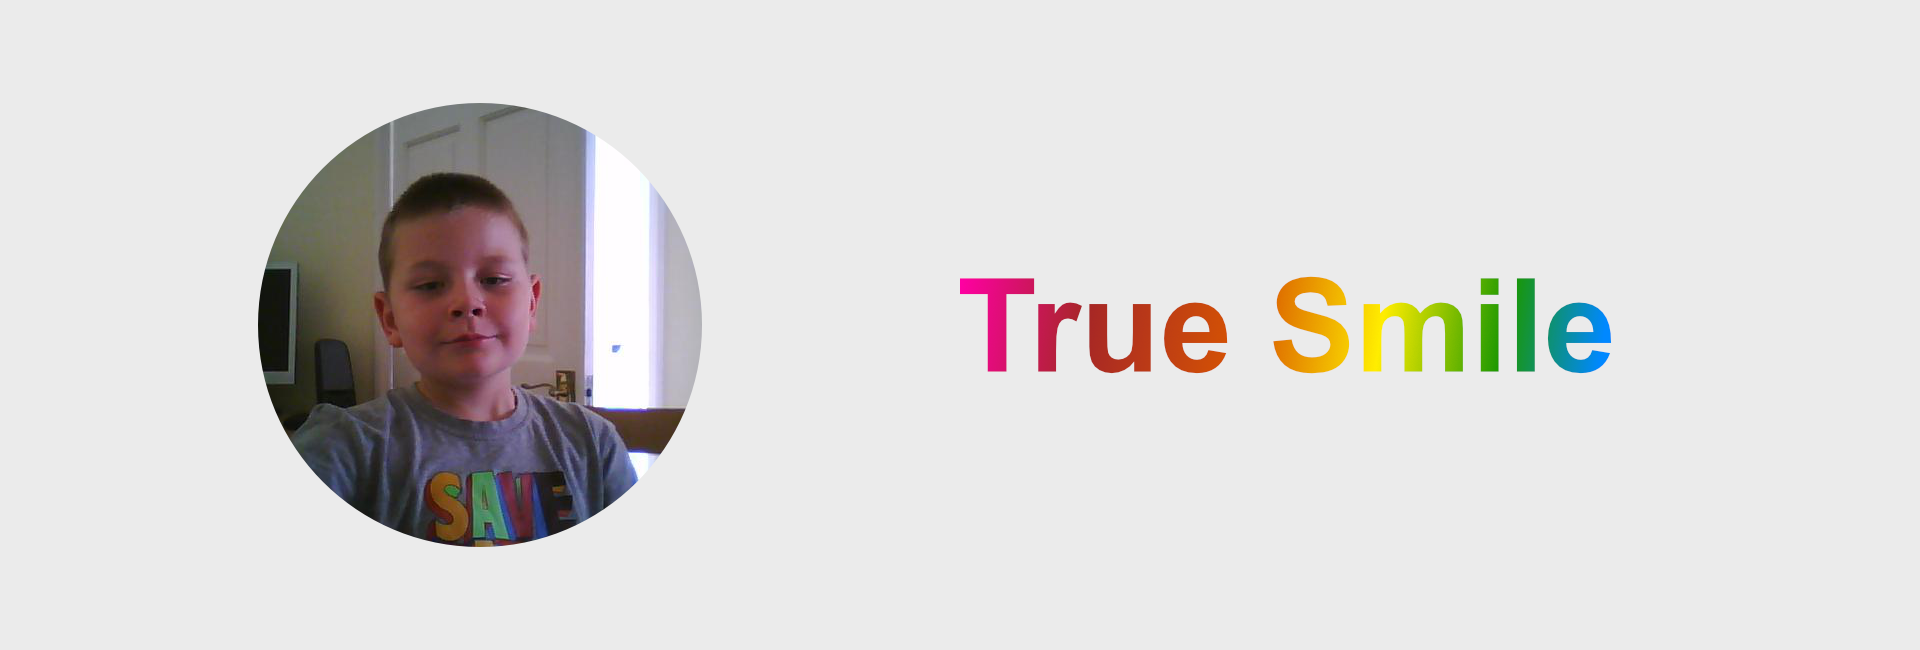 Danny and True Smile logo